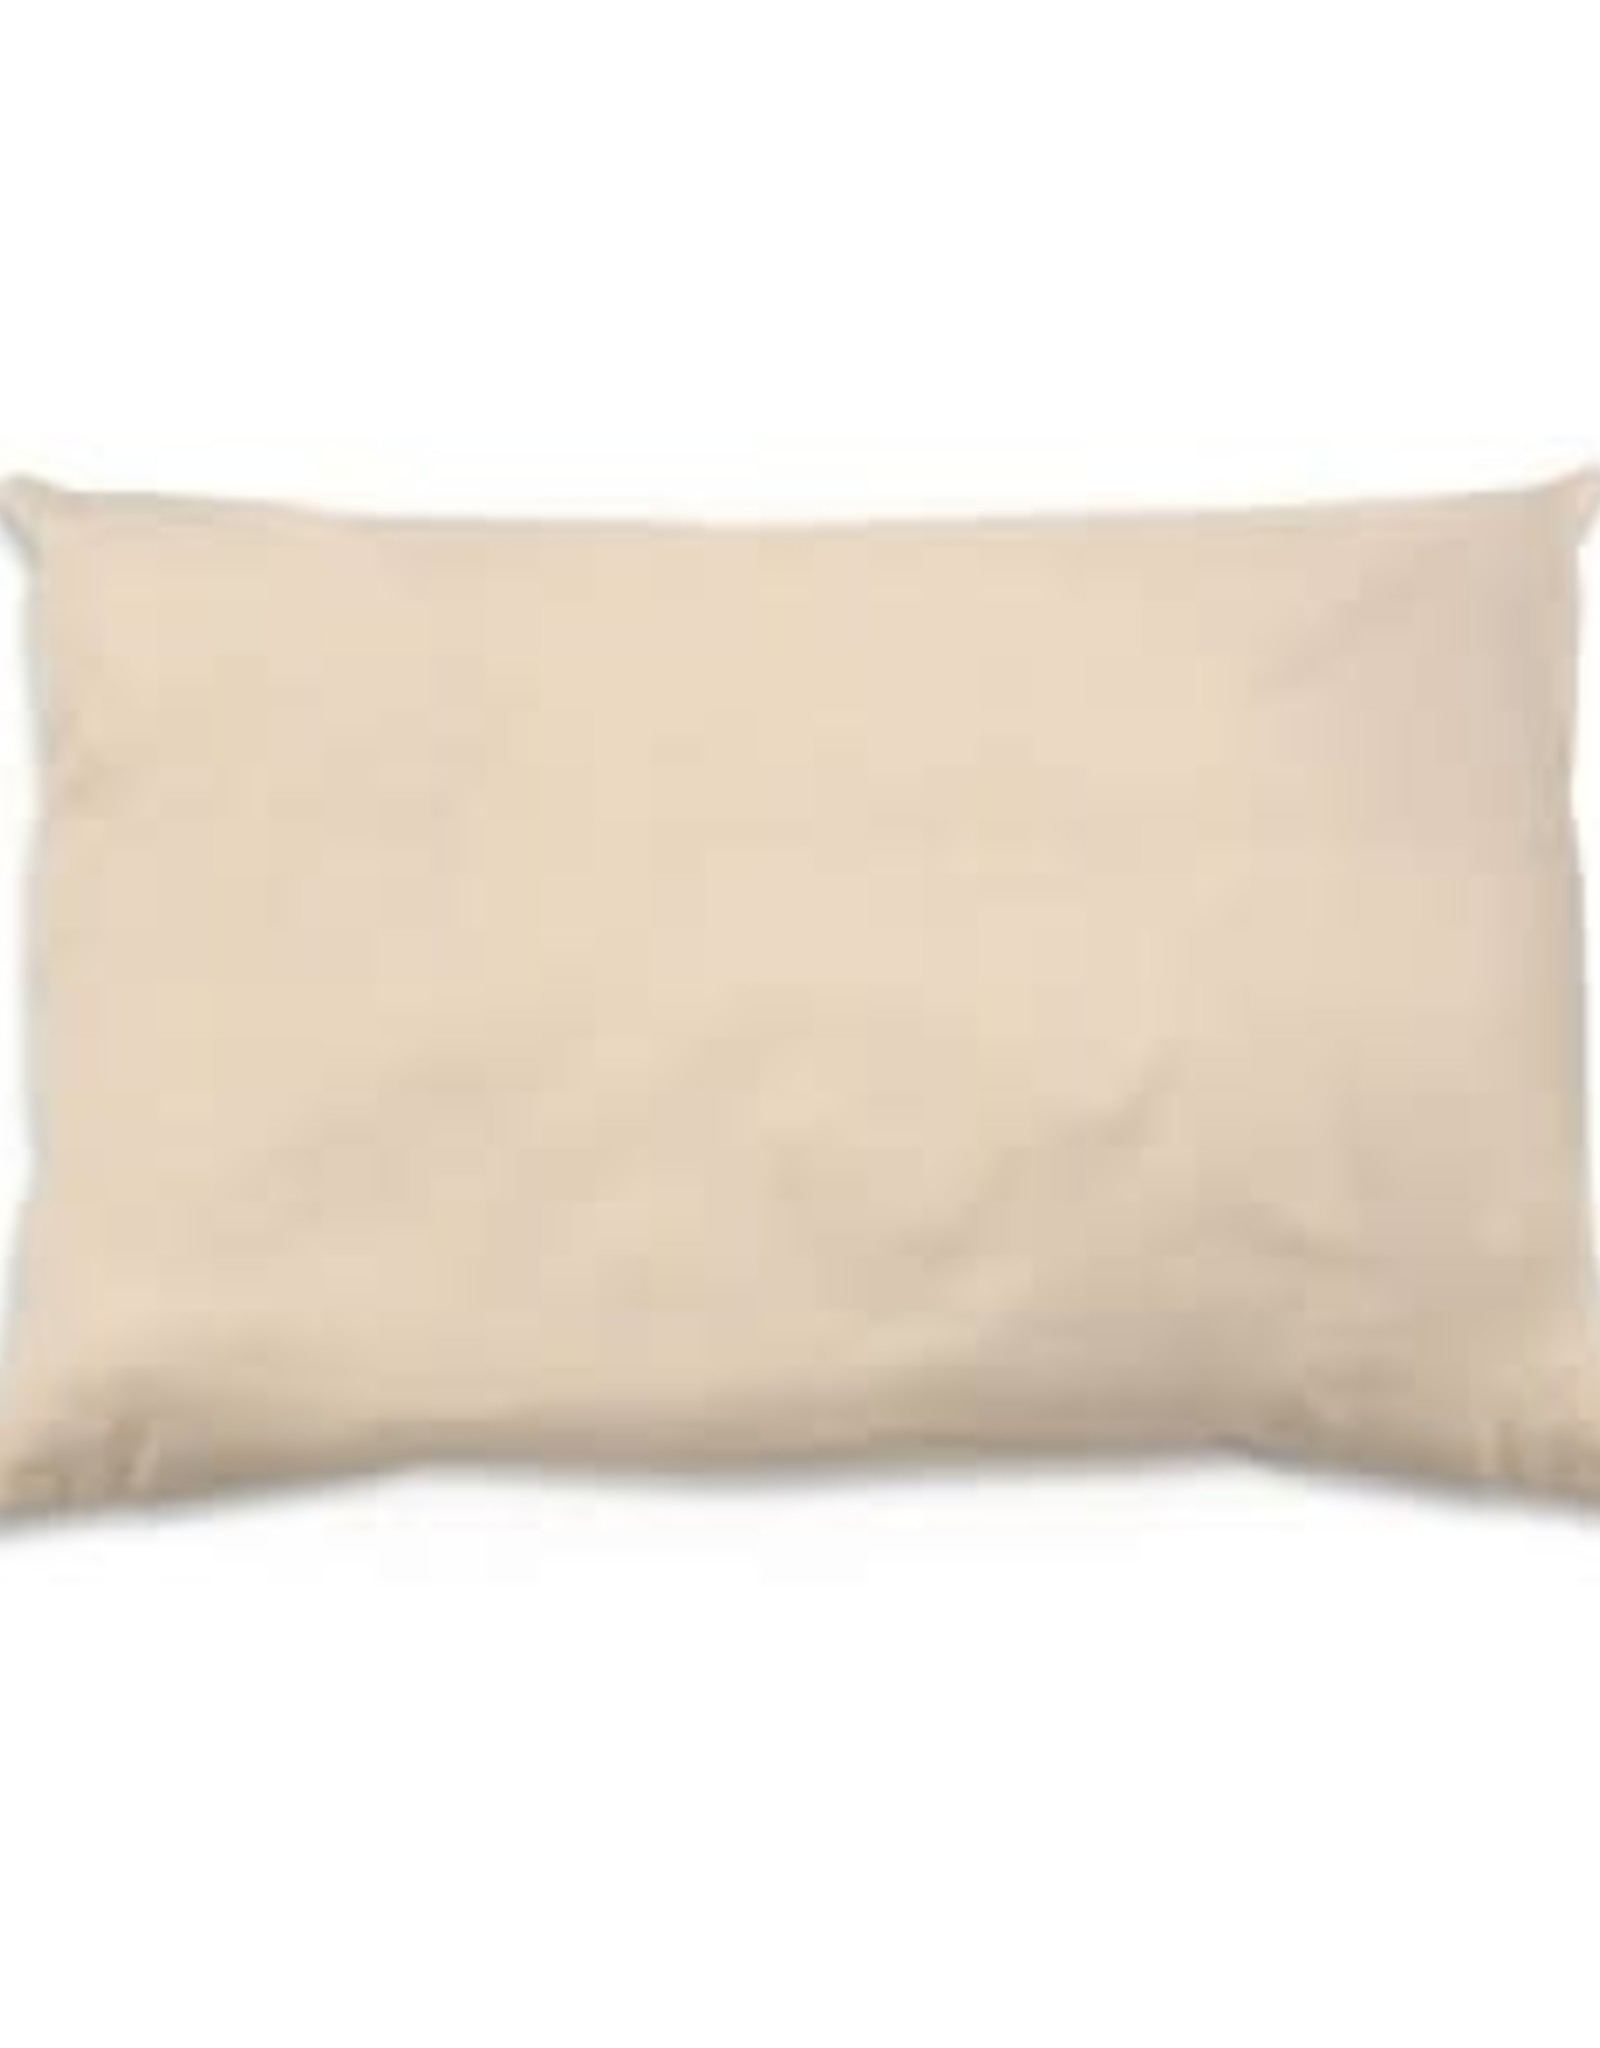 Naturepedic Organic Cotton Pillow - PLA Standard size 20 in x 26 in Low Fill